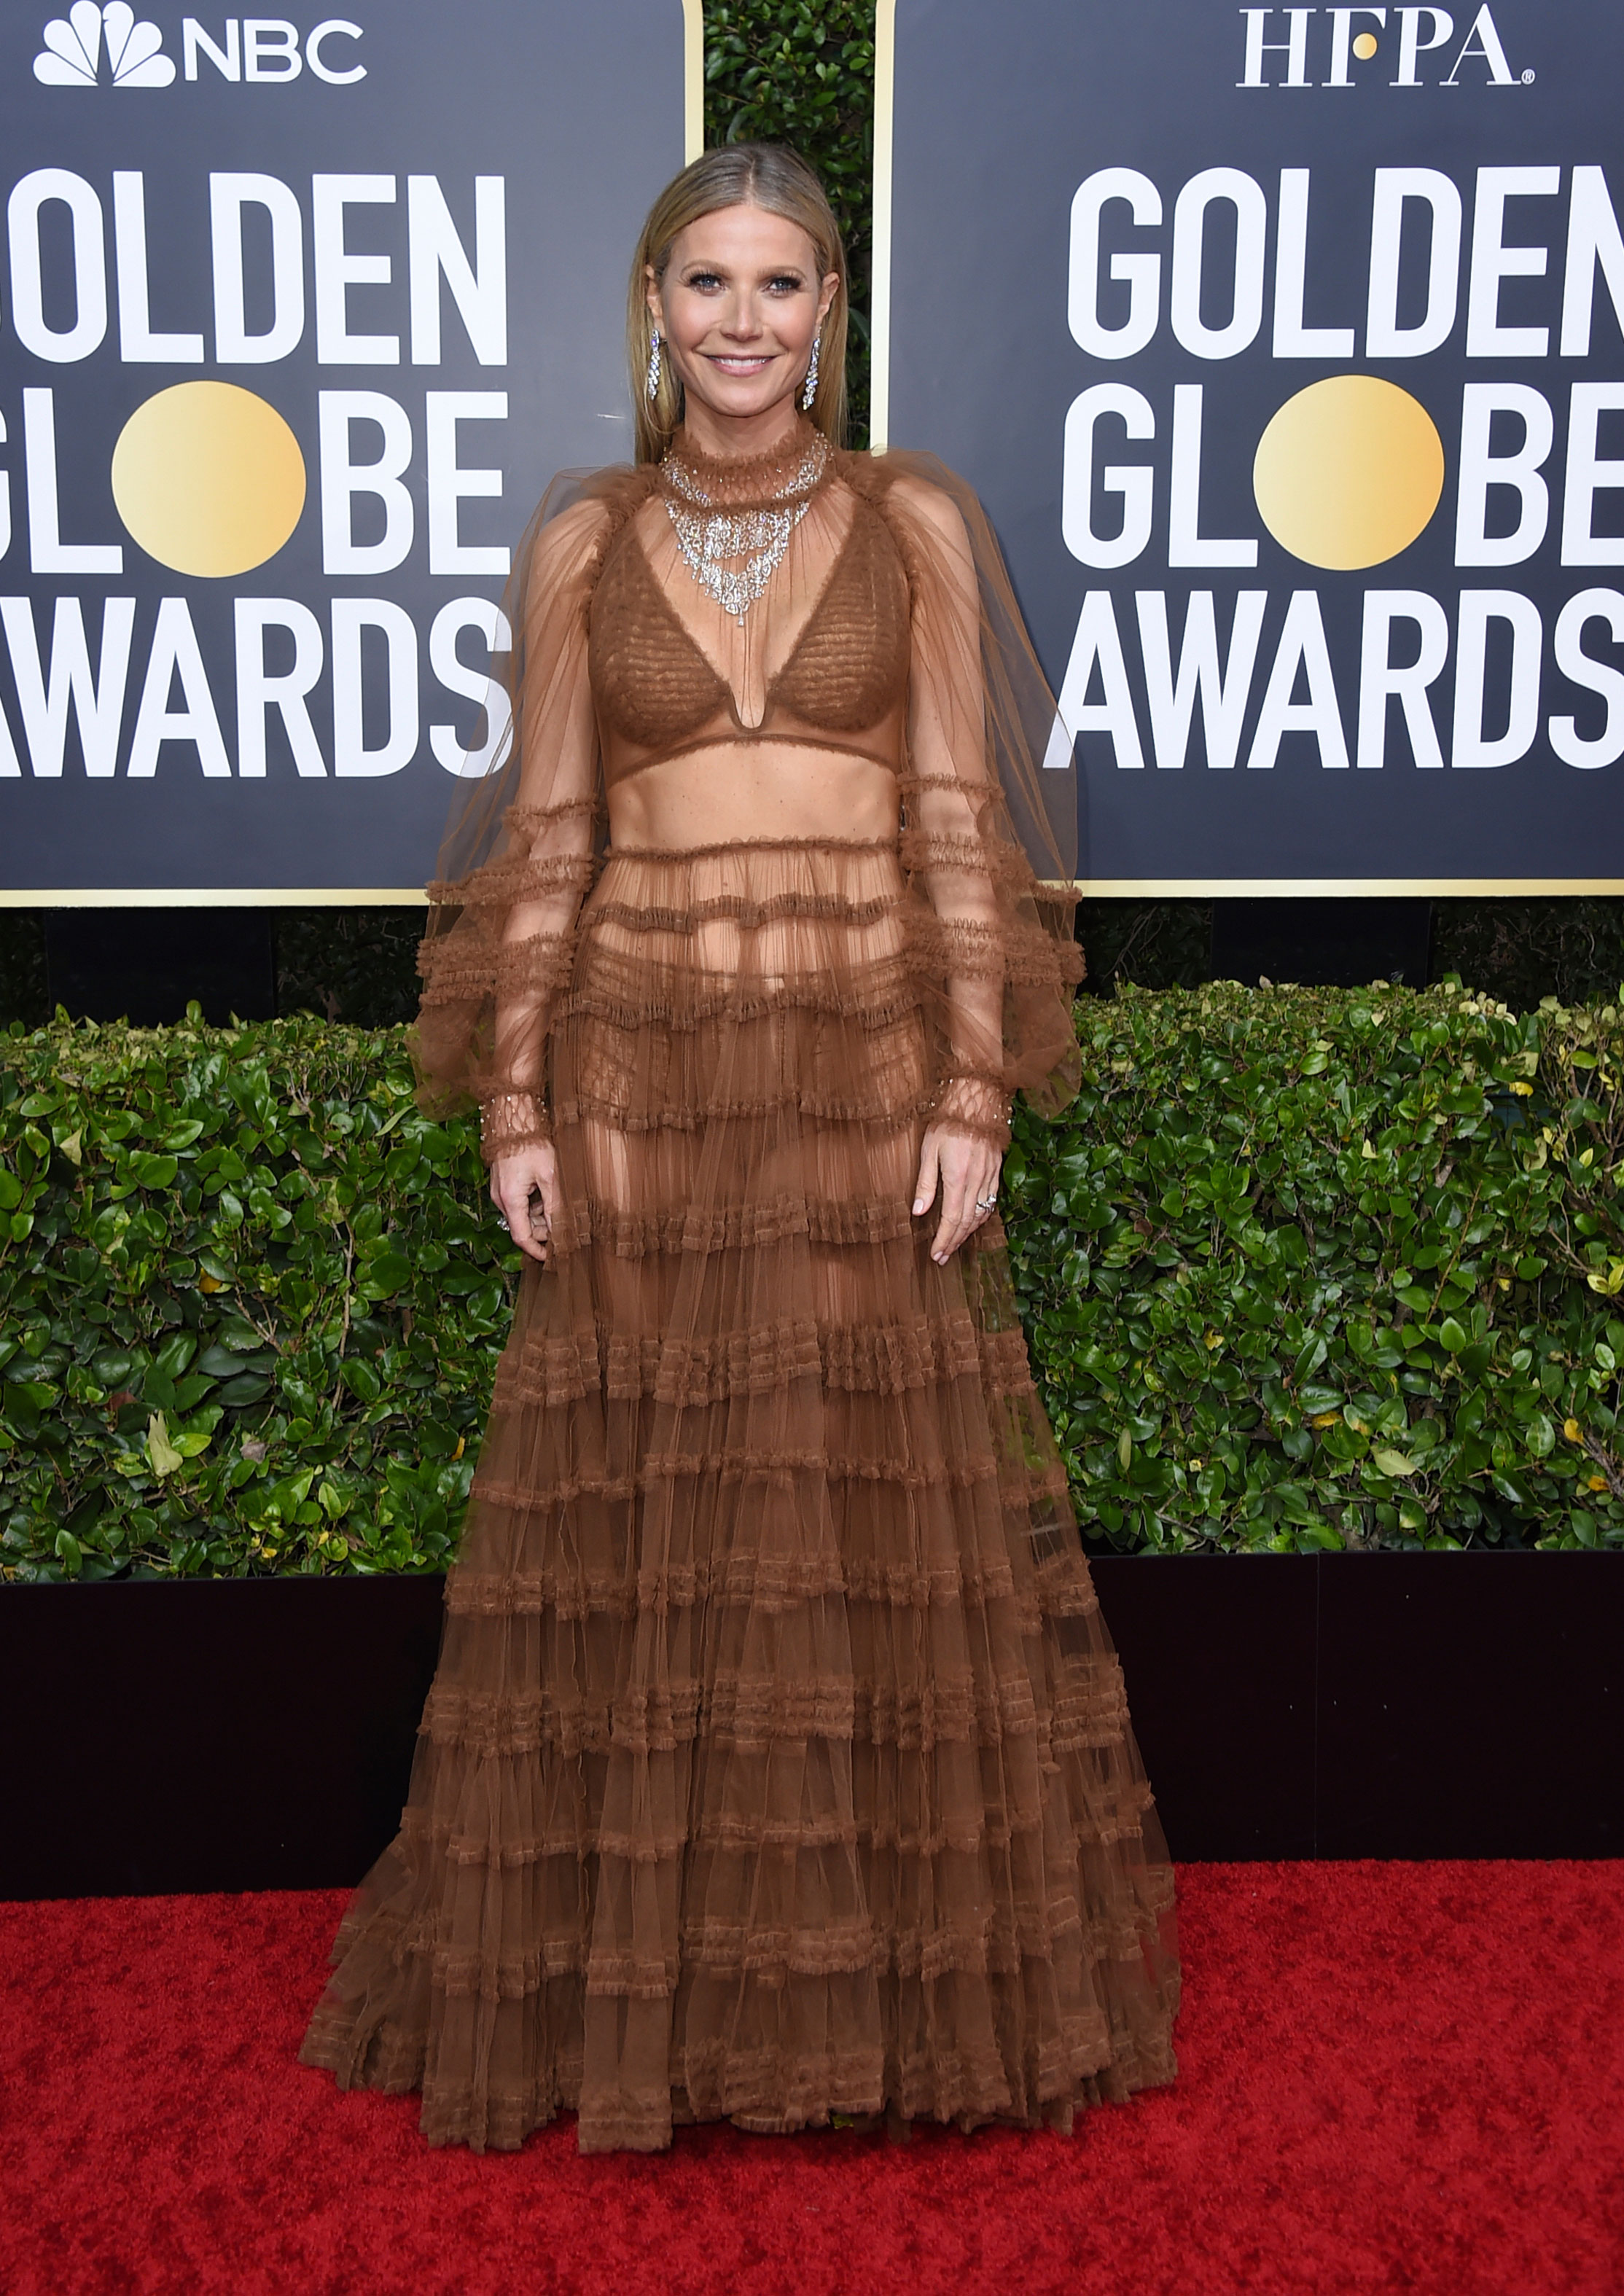 Gwyneth Paltrow looked smoking hot in a sheer Fendi gown with ruching. The veteran actress who left little to imagination looked lovely in the caramel outfit that she wore with almost 100 carats of Bulgari diamonds. To rock an almost-see-through outfit without looking tacky is commendable!